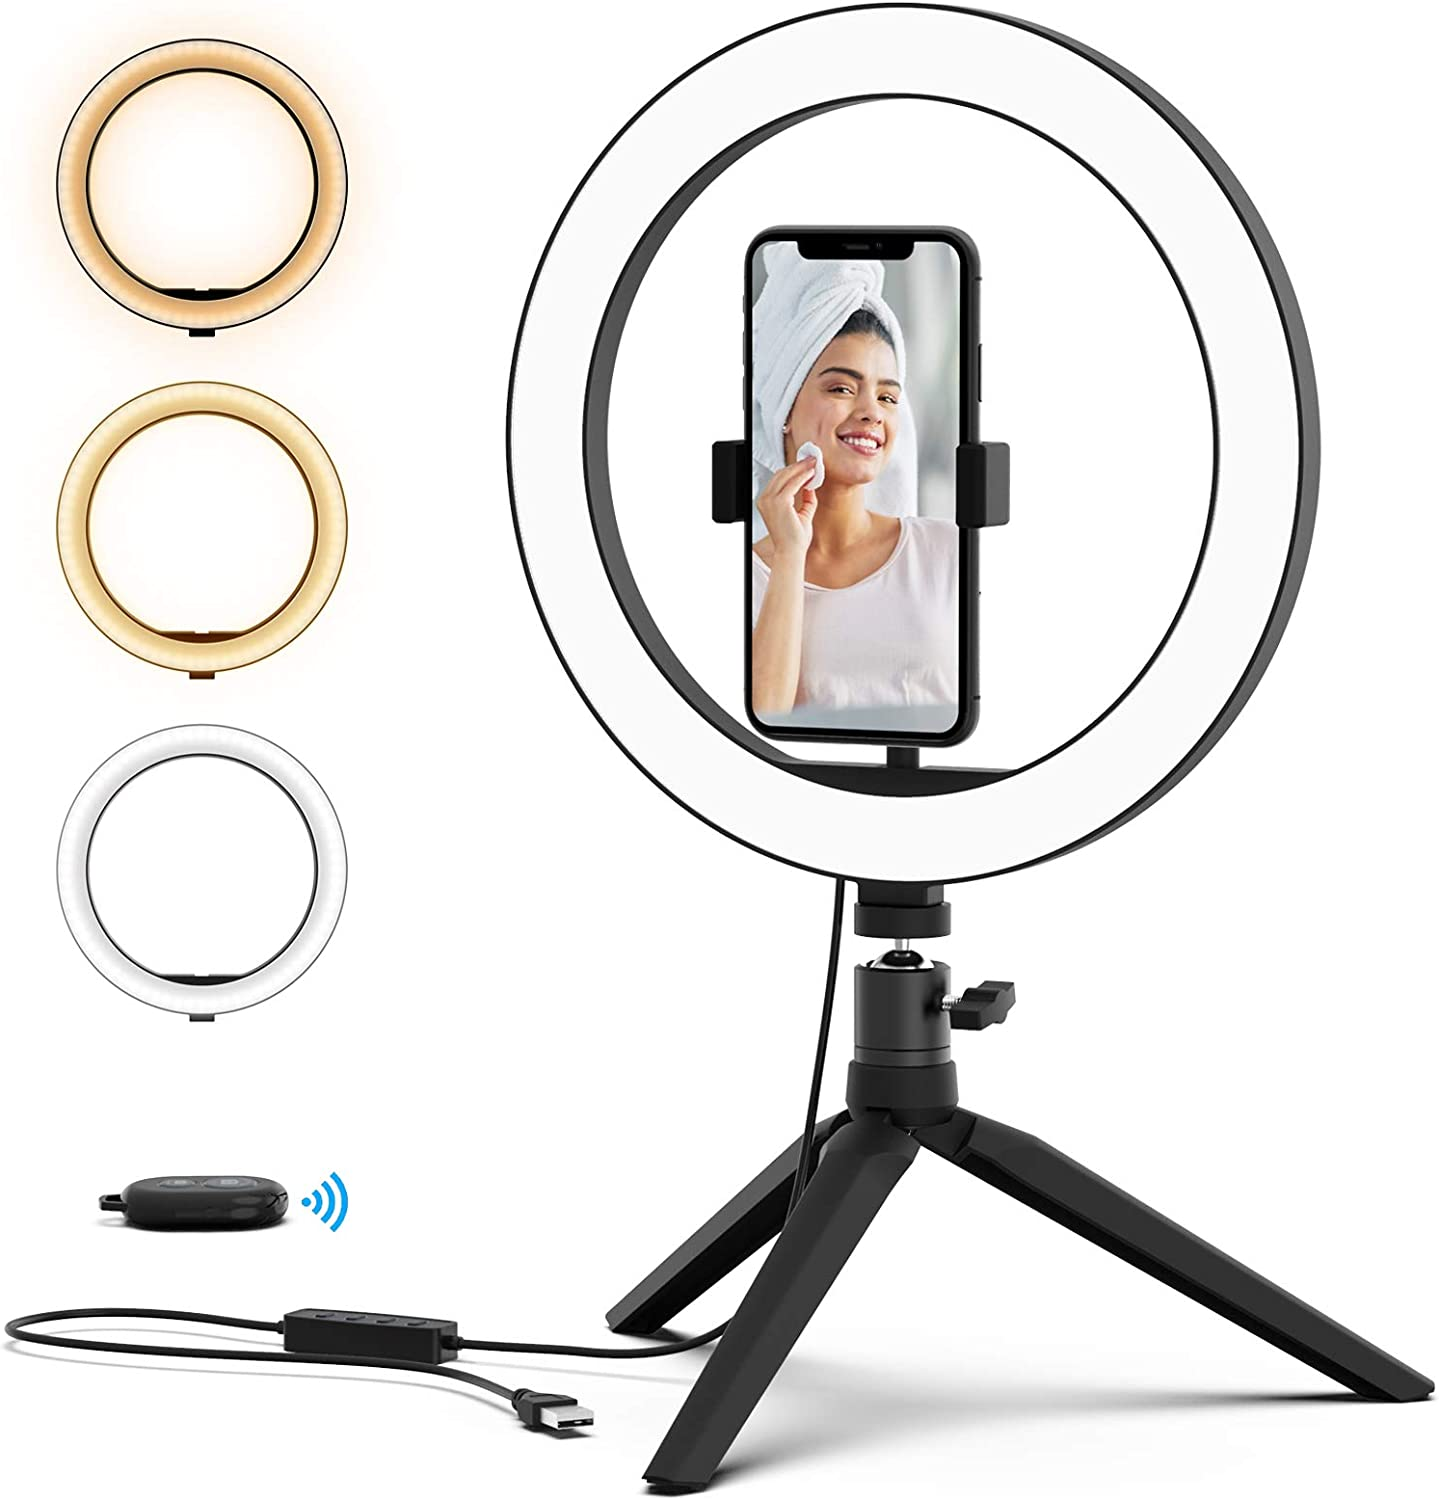 Desktop Makeup Camera Fill light for YouTube Video Recordings dimmable Color LED Lamps Photography Boaraino Selfie Ring Light 10 26 colour with Tripod /& Cell Phone Holder and Remote Control Live Stream Makeup